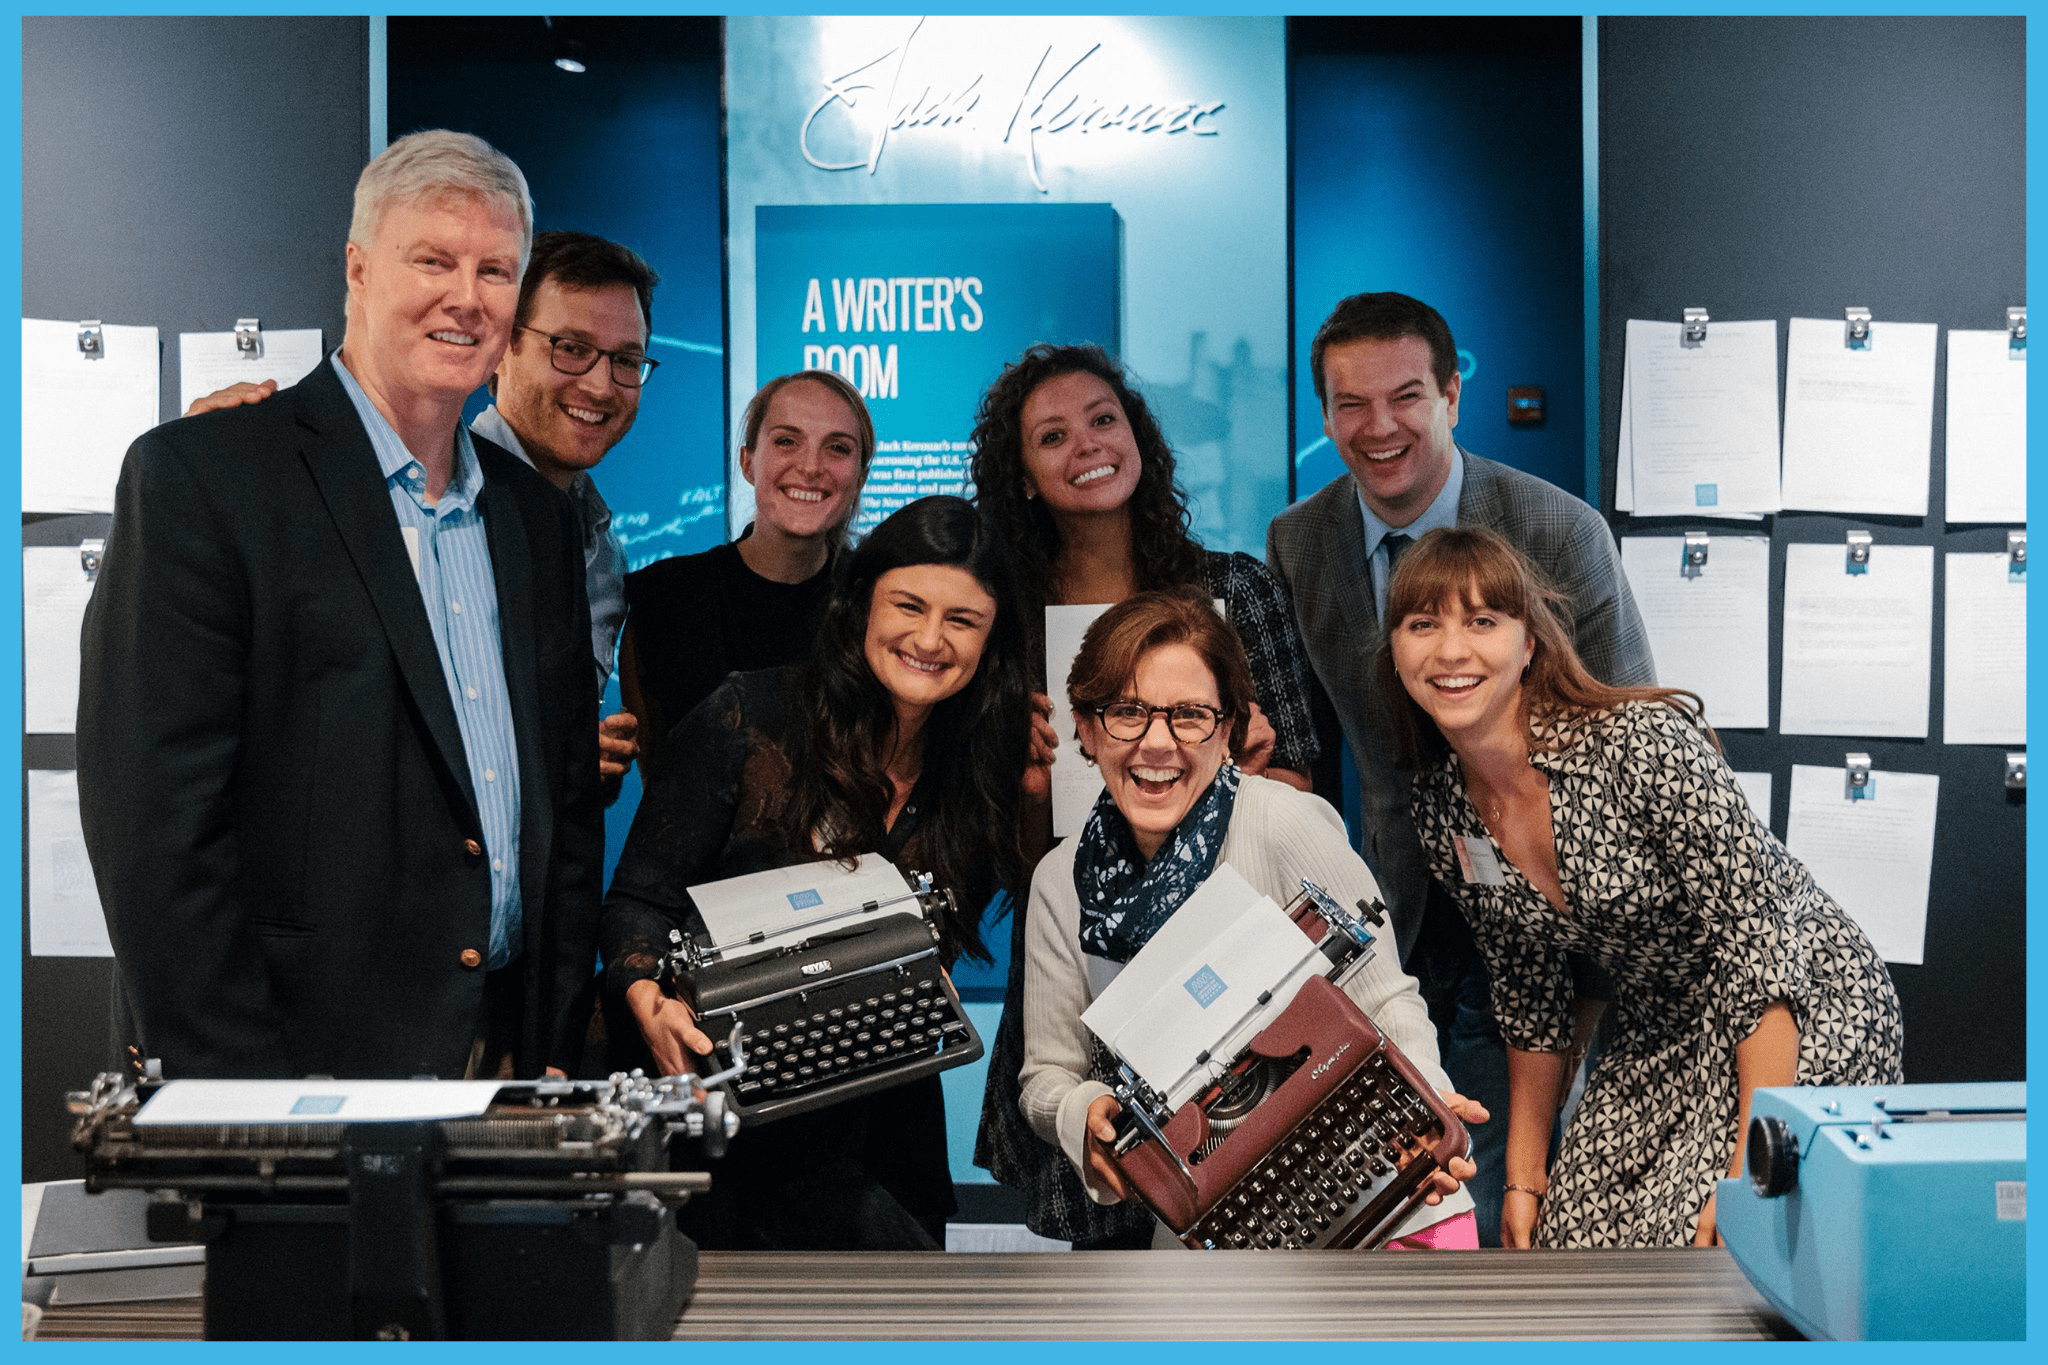 A group of eight people excitedly pose with typewriters at the Story of the Day exhibit